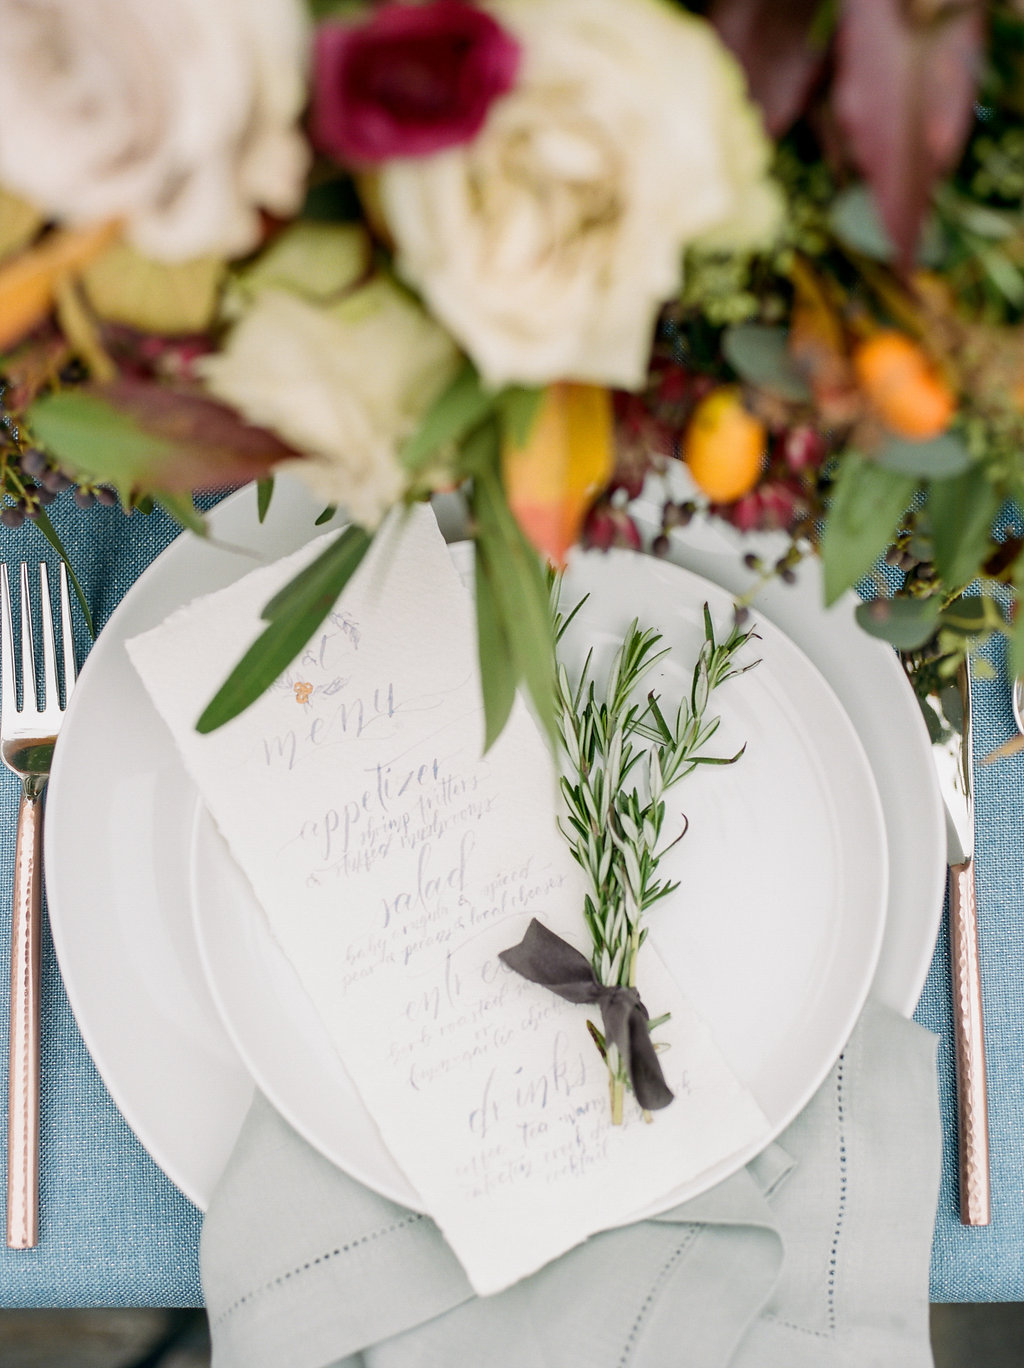 place settings with rosemary - photo by Lissa Ryan Photography https://ruffledblog.com/modern-romantic-wedding-ideas-with-family-heirlooms